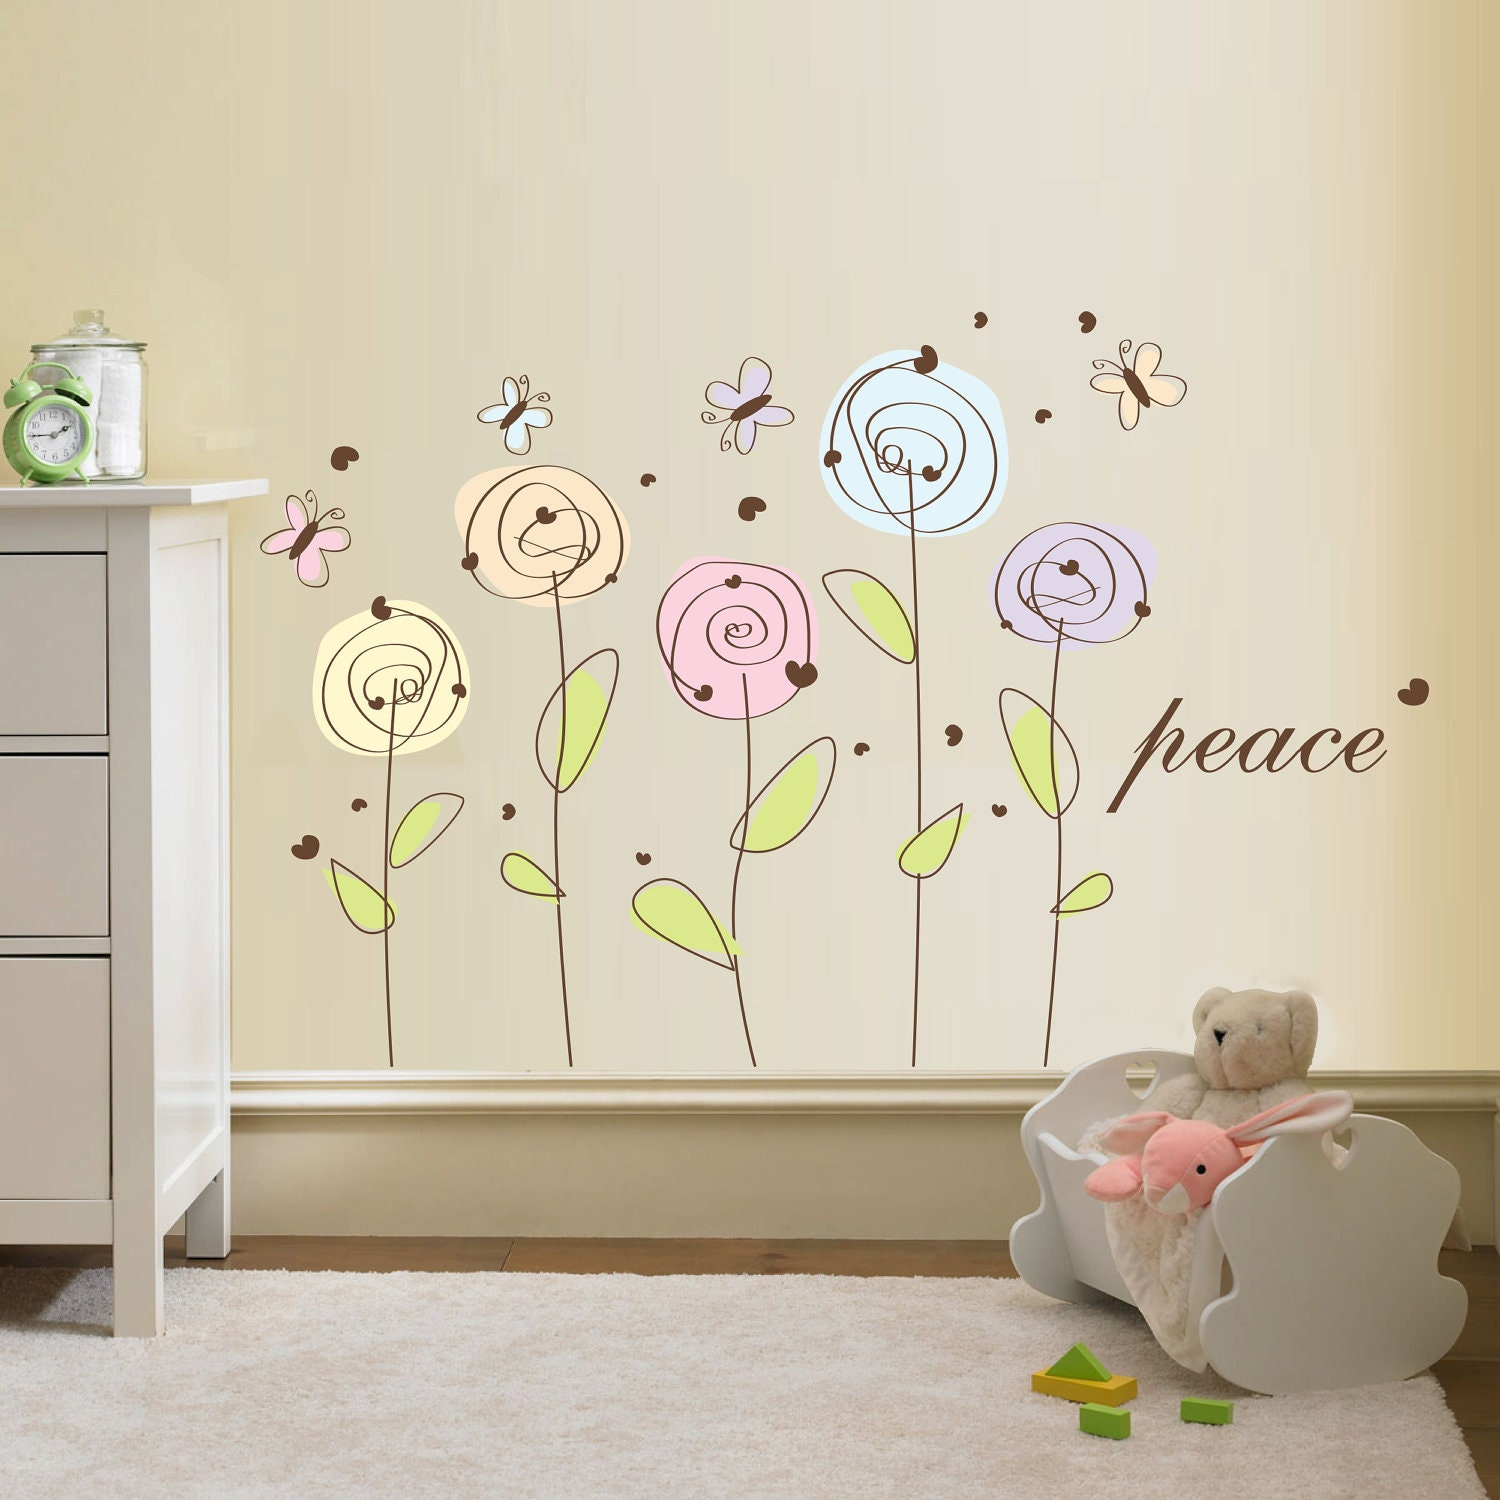 Wall Decor Stickers Flowers : Wall decals flowers grasscloth wallpaper